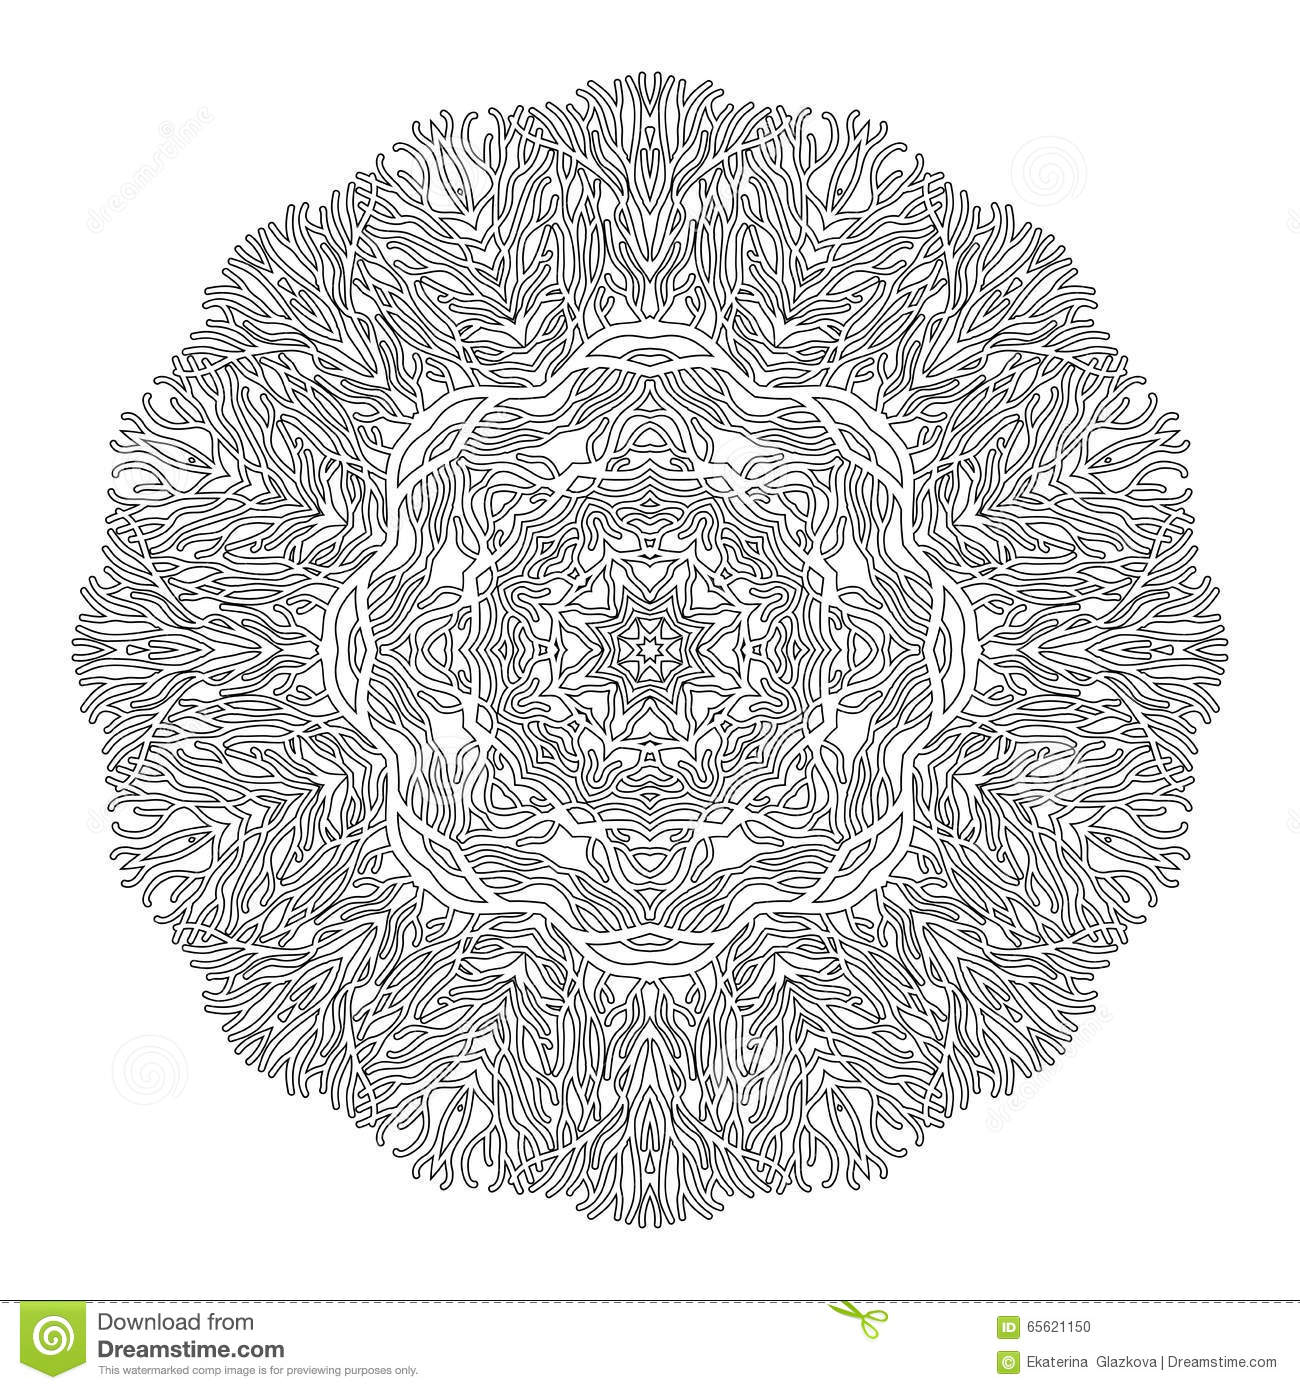 Abstract Circle Coloring Pages : Graphic coral circle ornament stock vector image